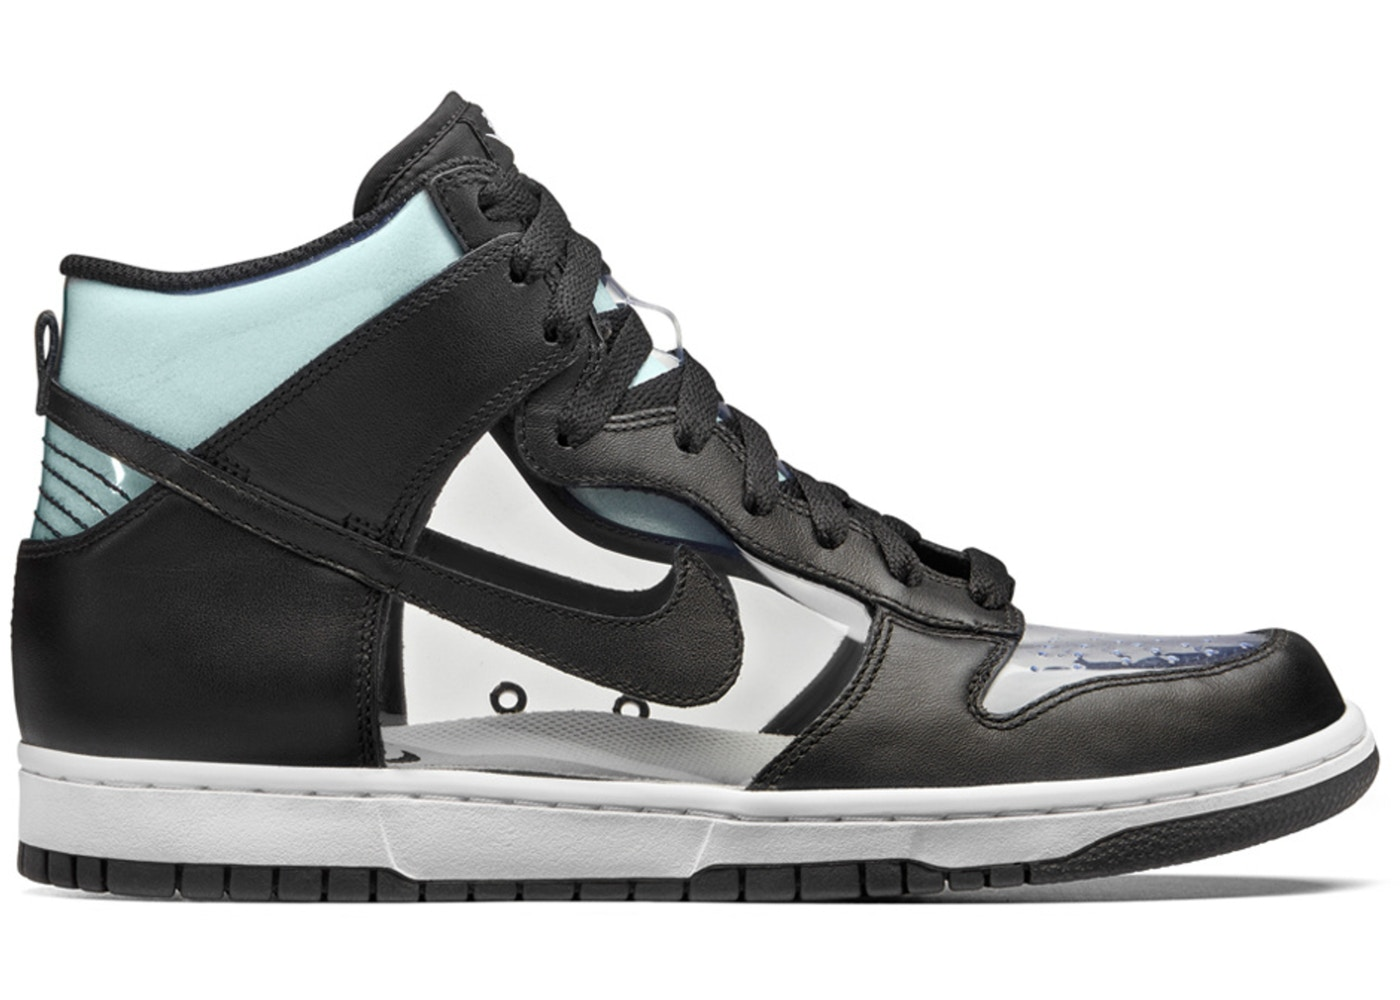 f57608574cd0 Nike Dunk High Comme Des Garcons Clear - 917428-001